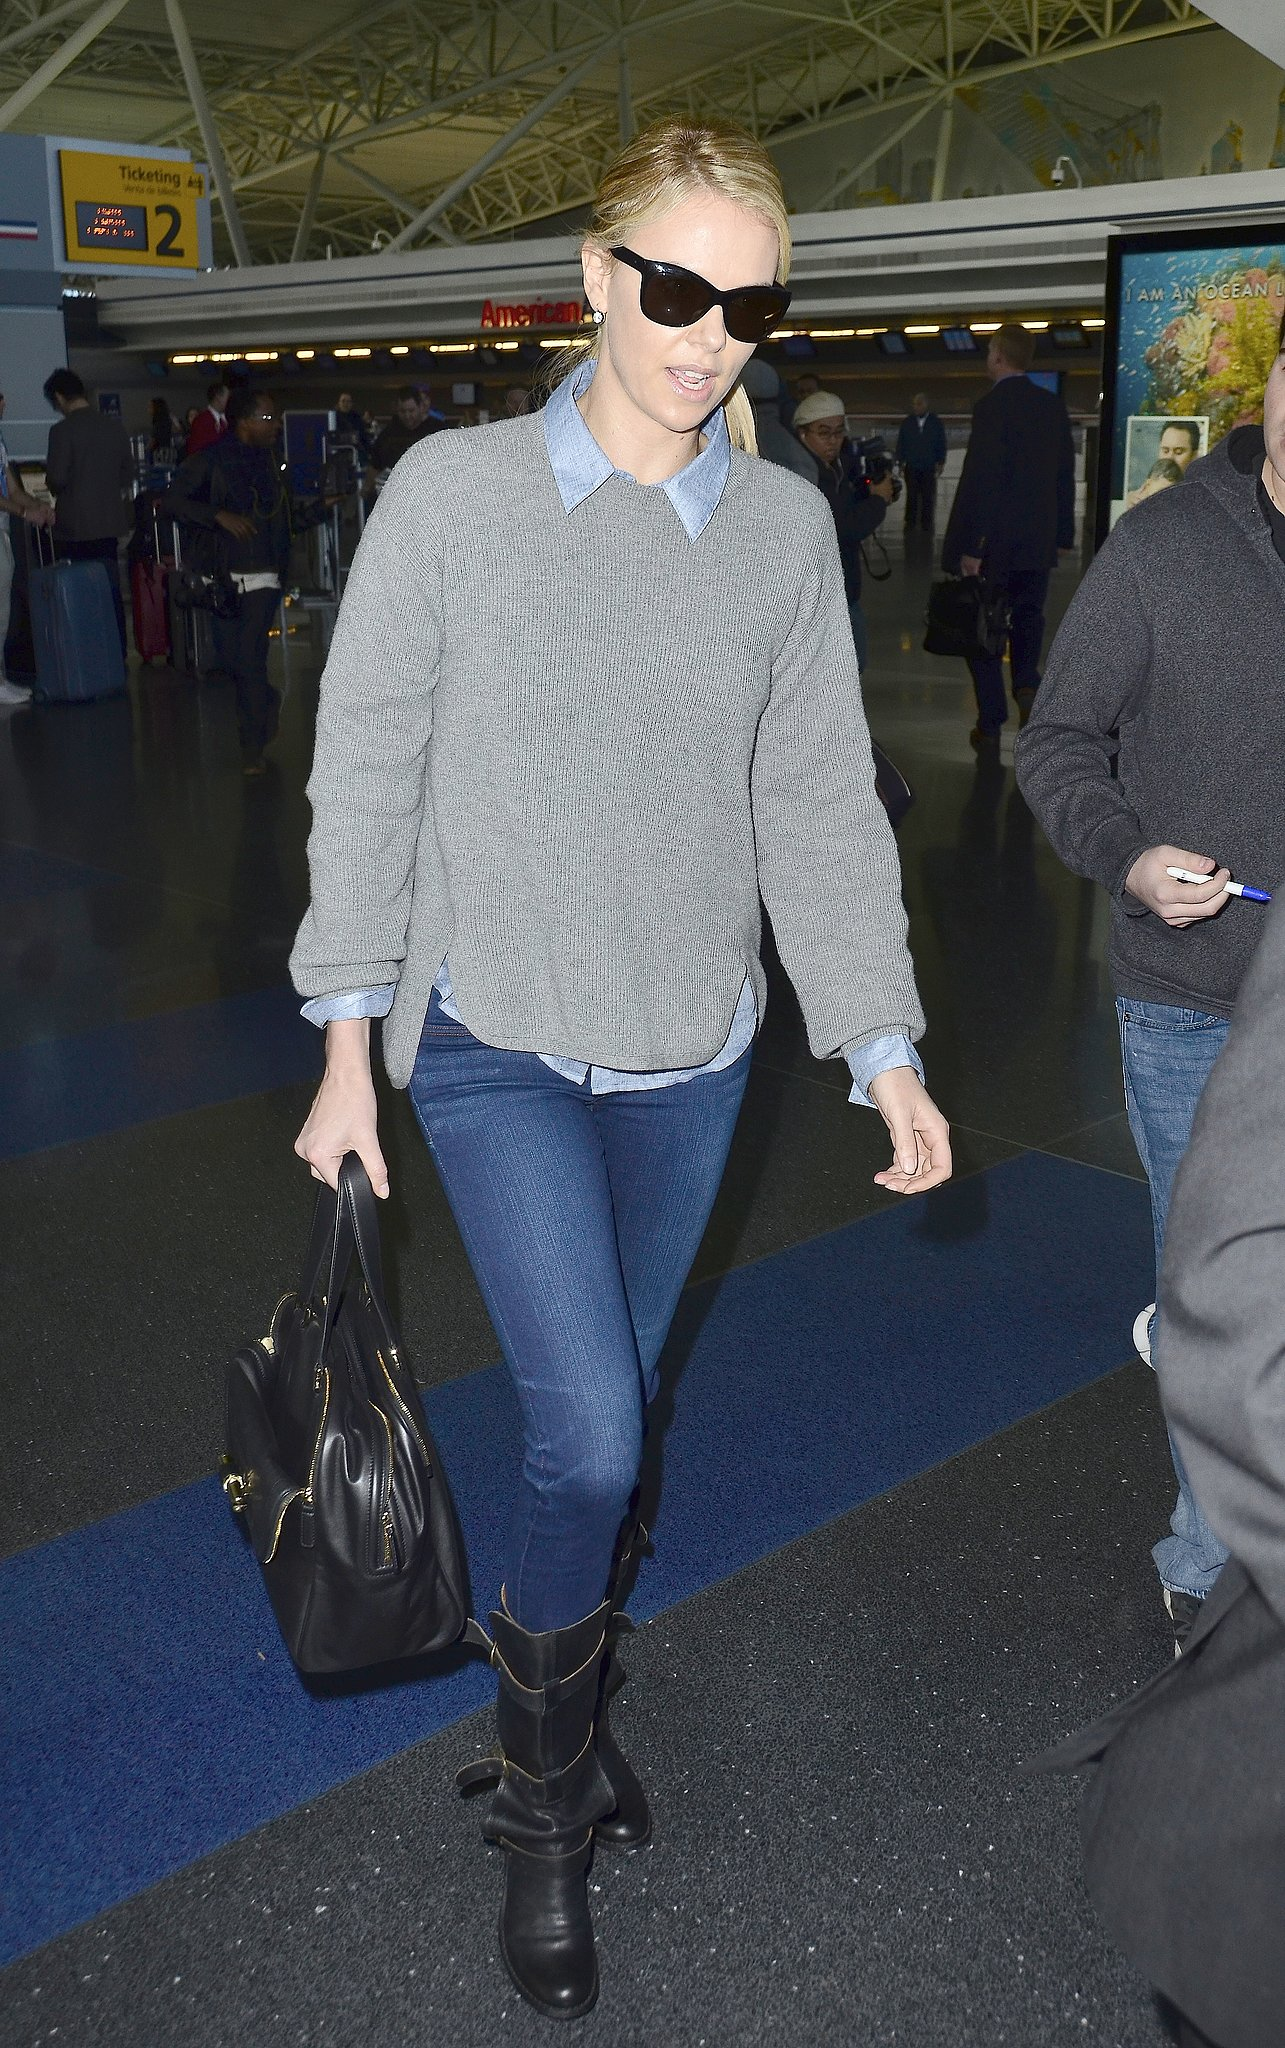 Airport couture never looked so good — Charlize toted a Jimmy Choo purse and flaunted her cool-girl Fiorentini + Baker boots while traveling.